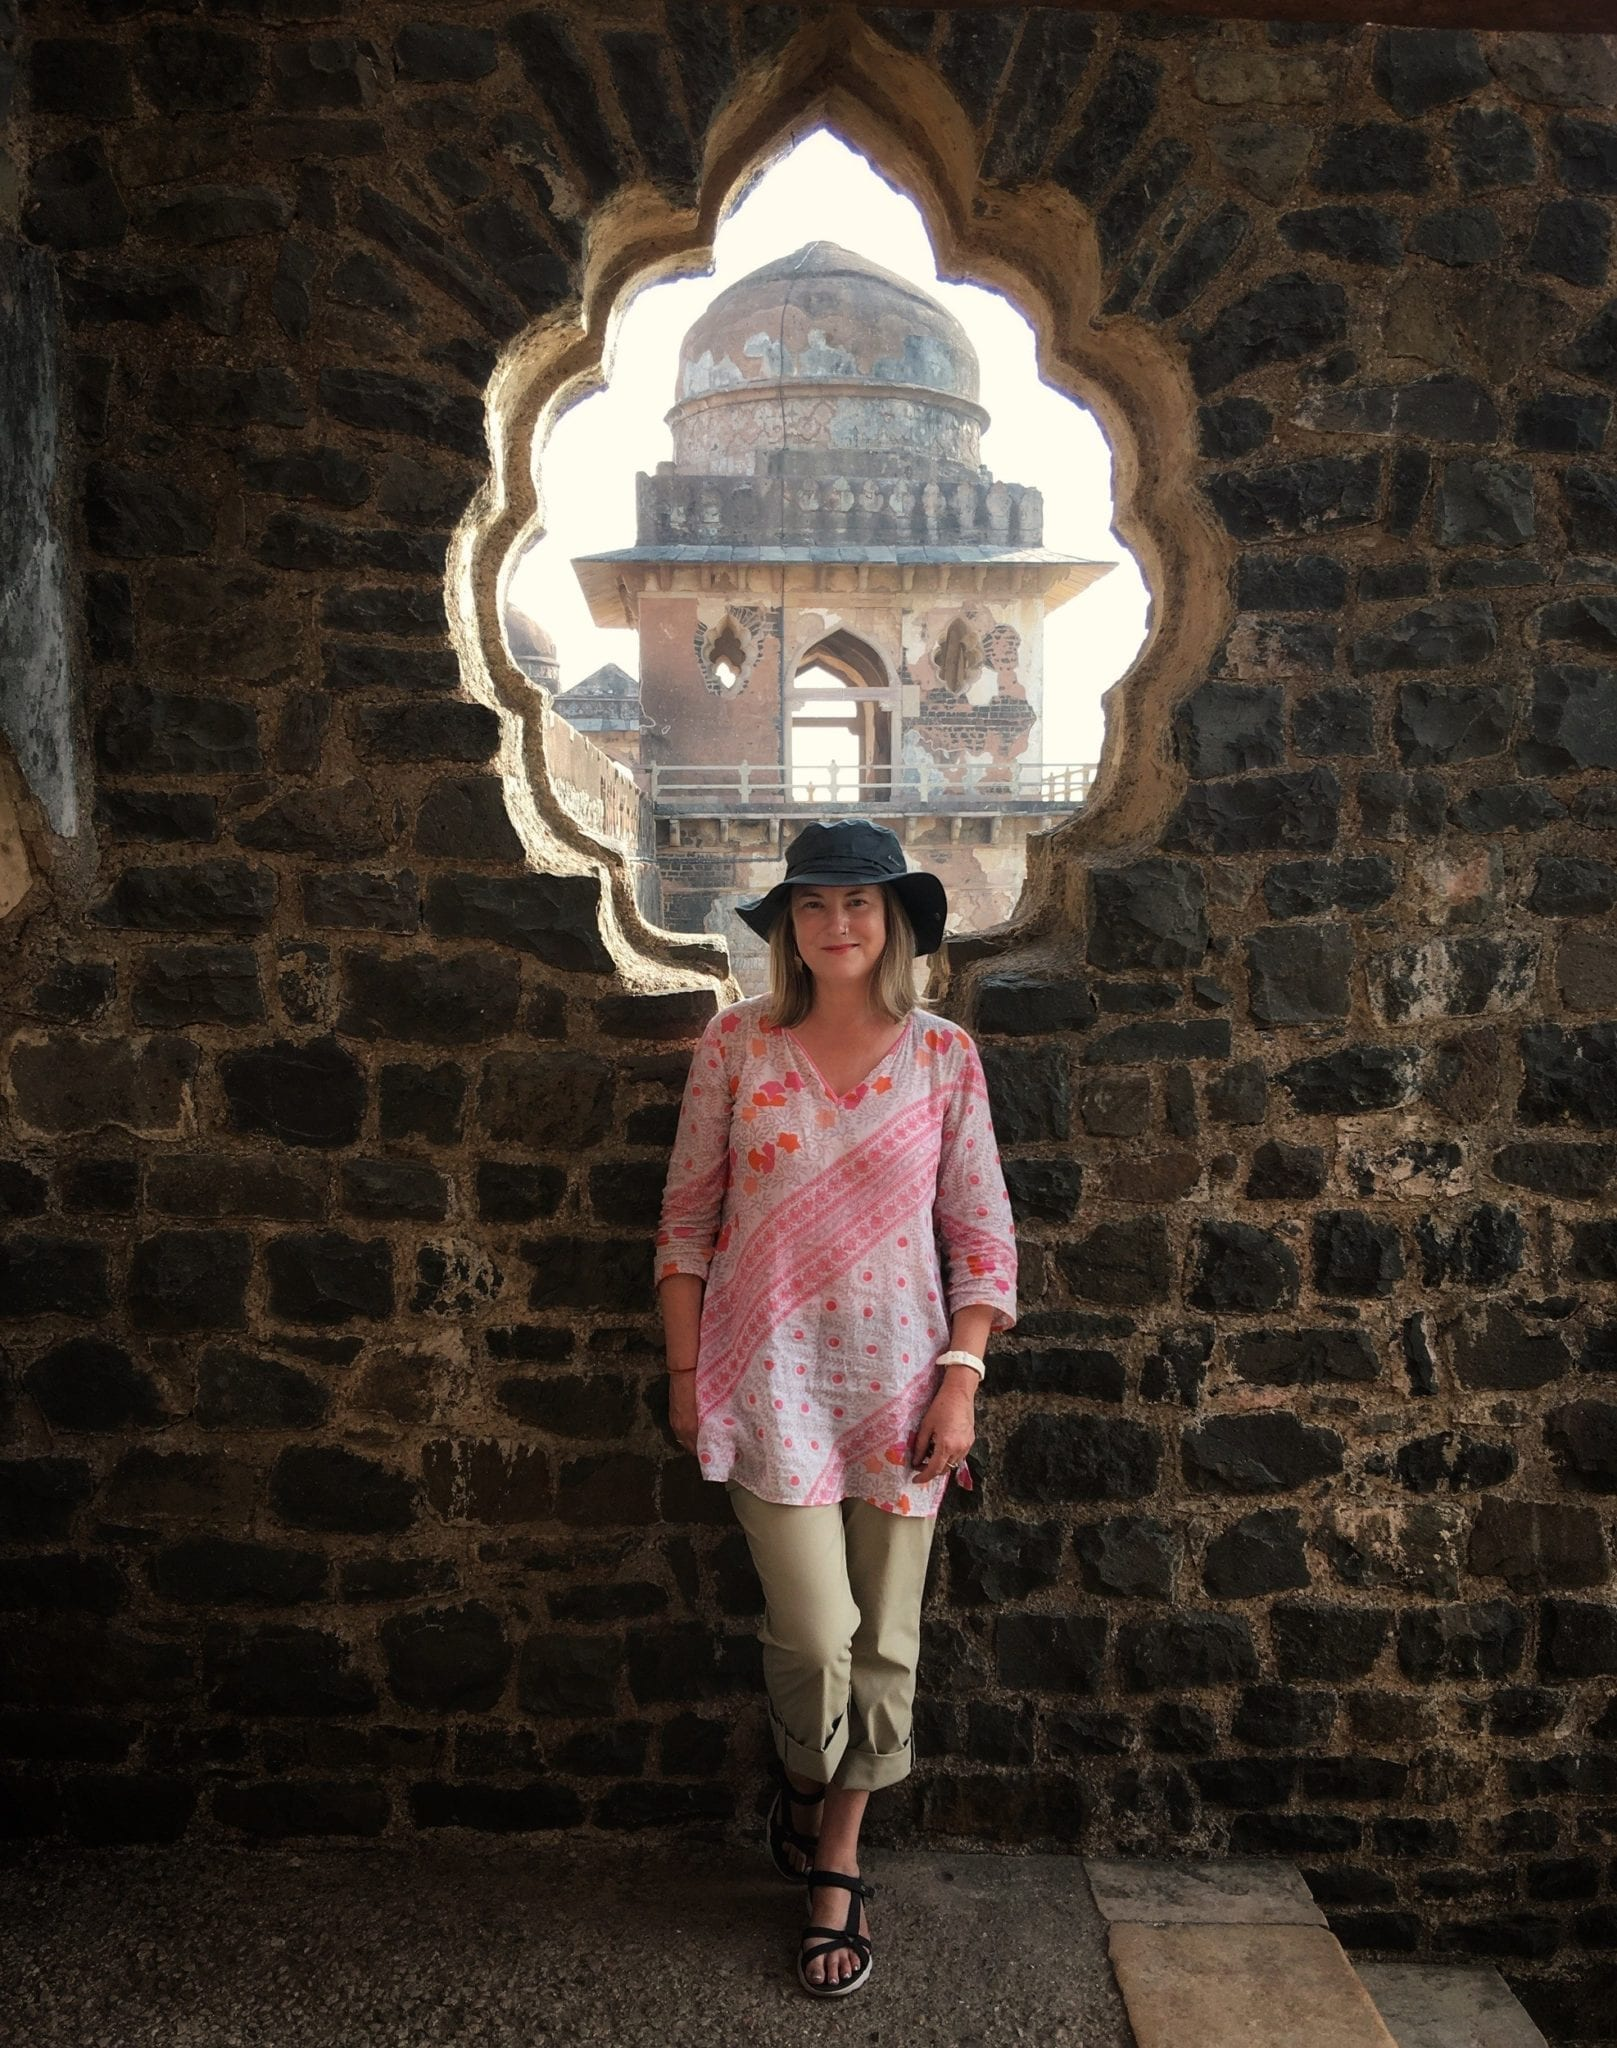 Mariellen Ward wearing a white and red top and black hat and posing in front of a scalloped window opening in a temple in Mind, India.